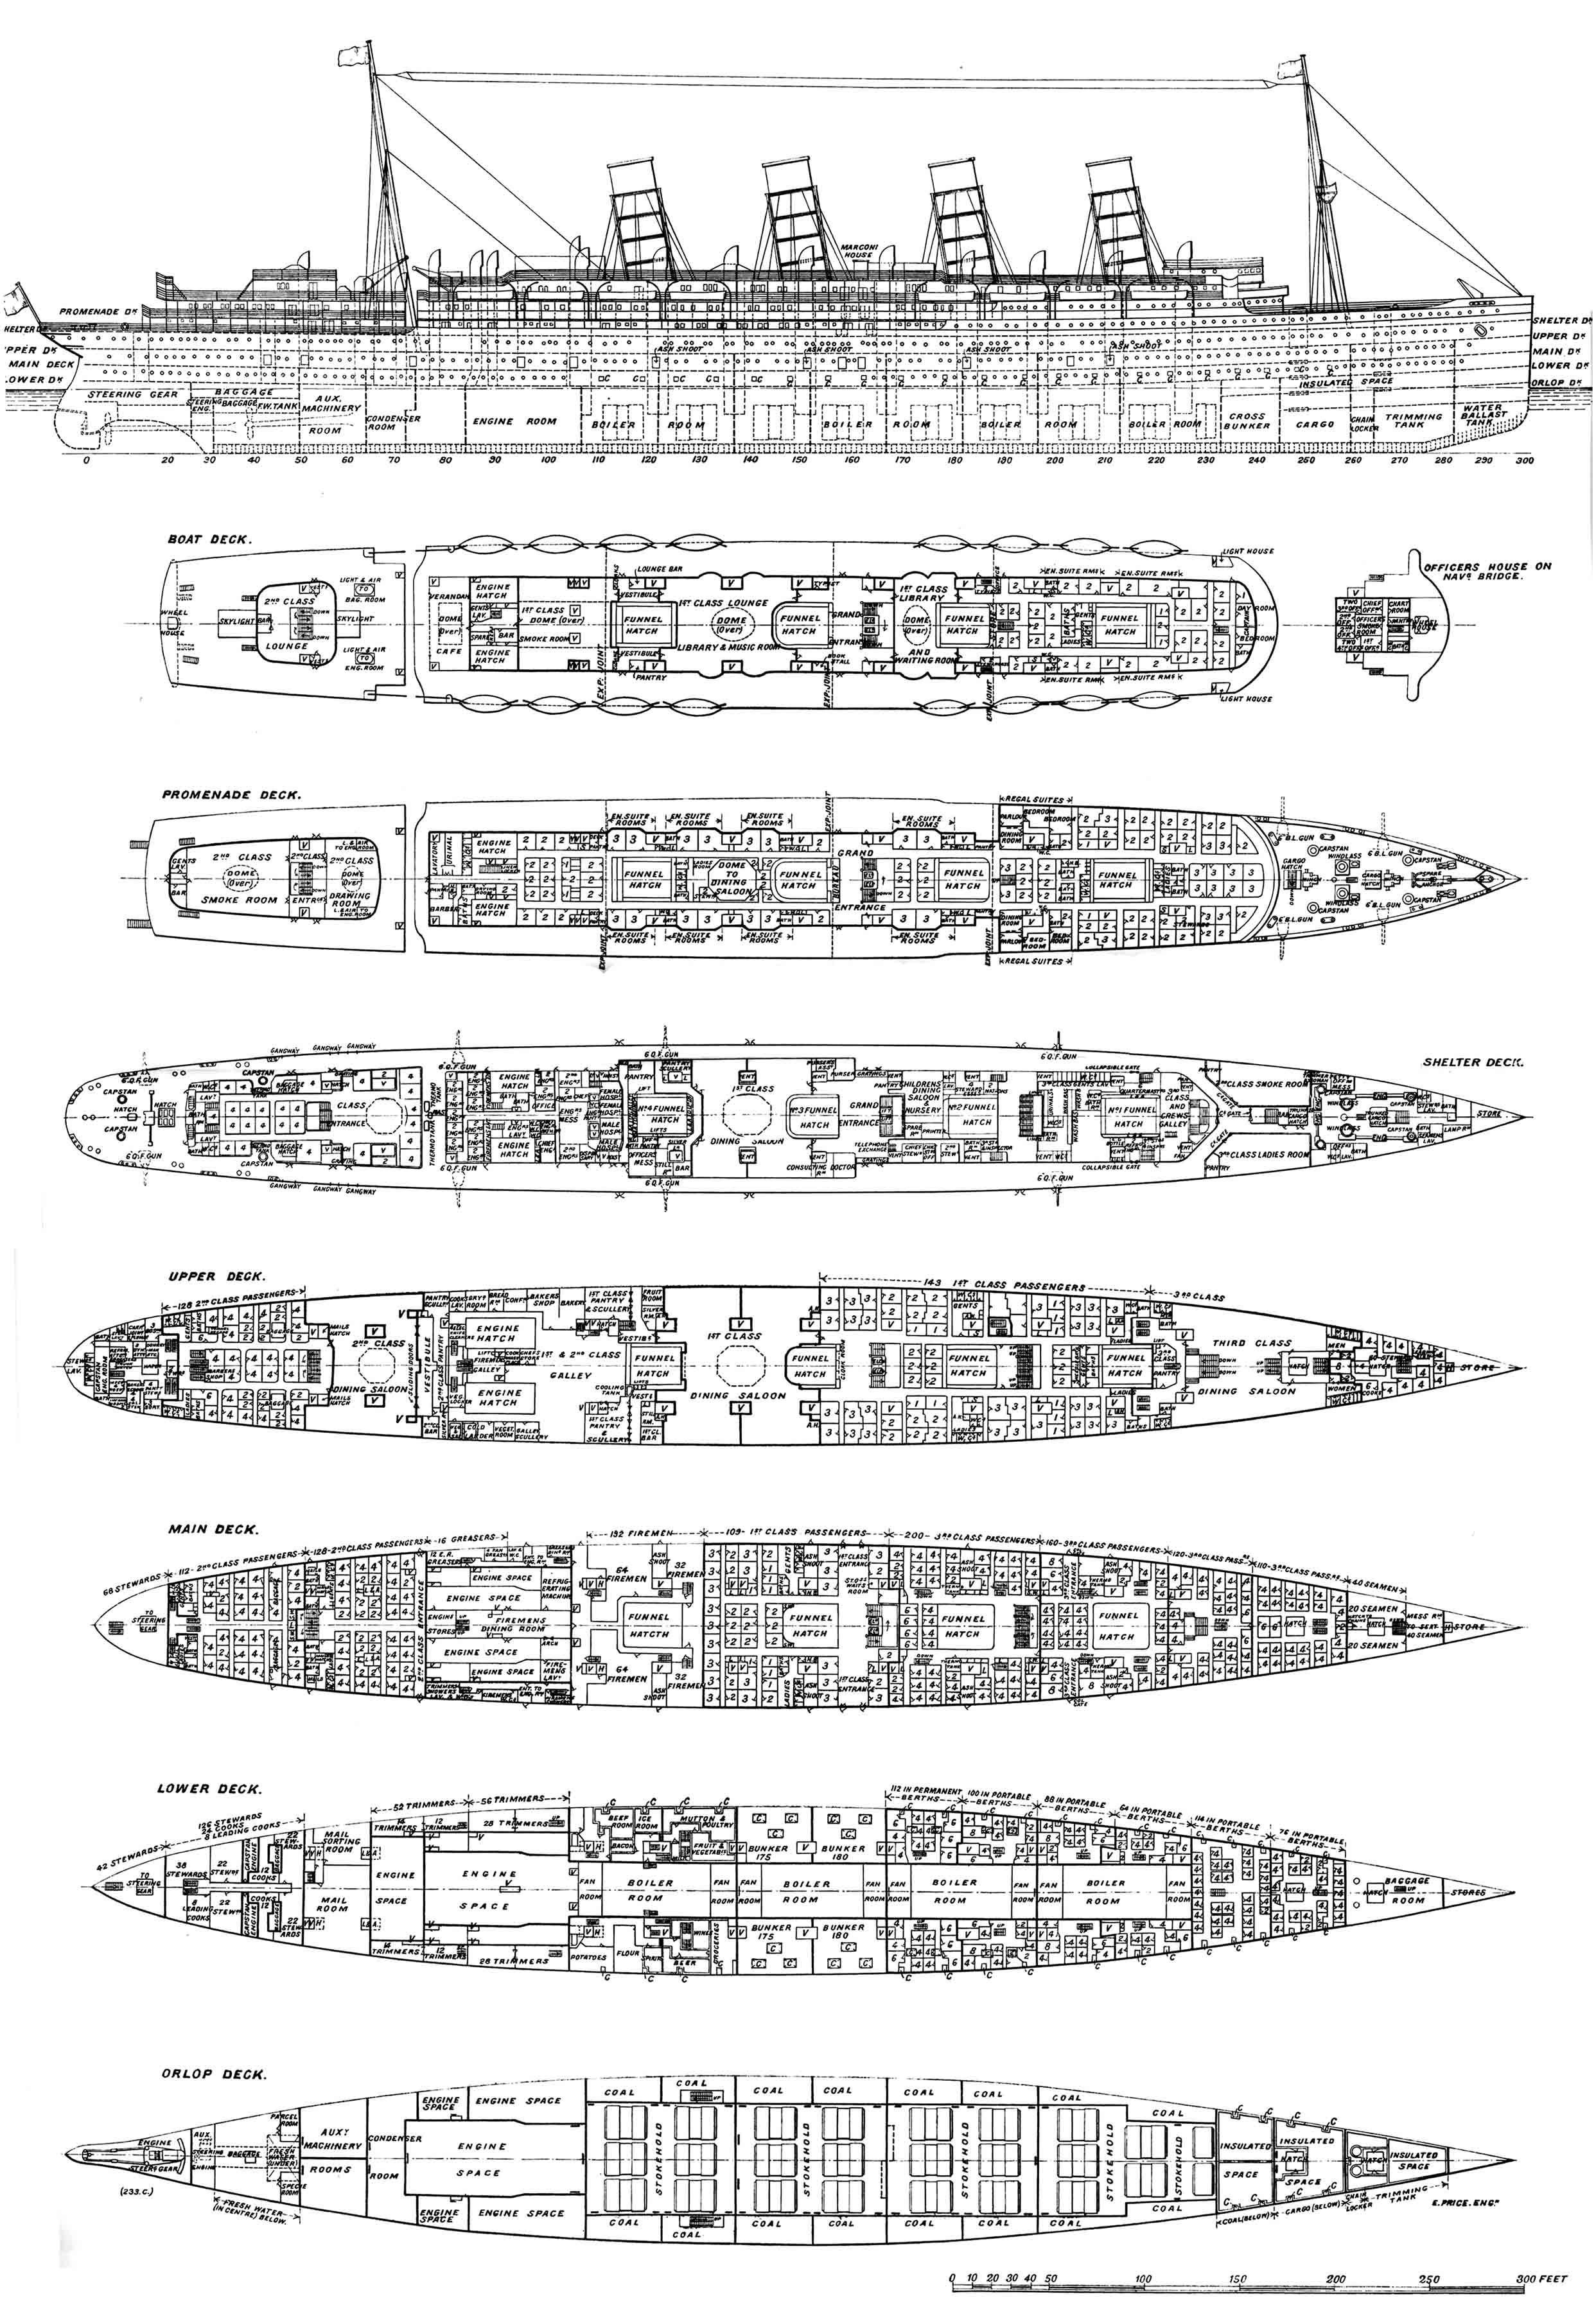 Deck Plan of Mauretania 1906 by Scottvisnjic on DeviantArt